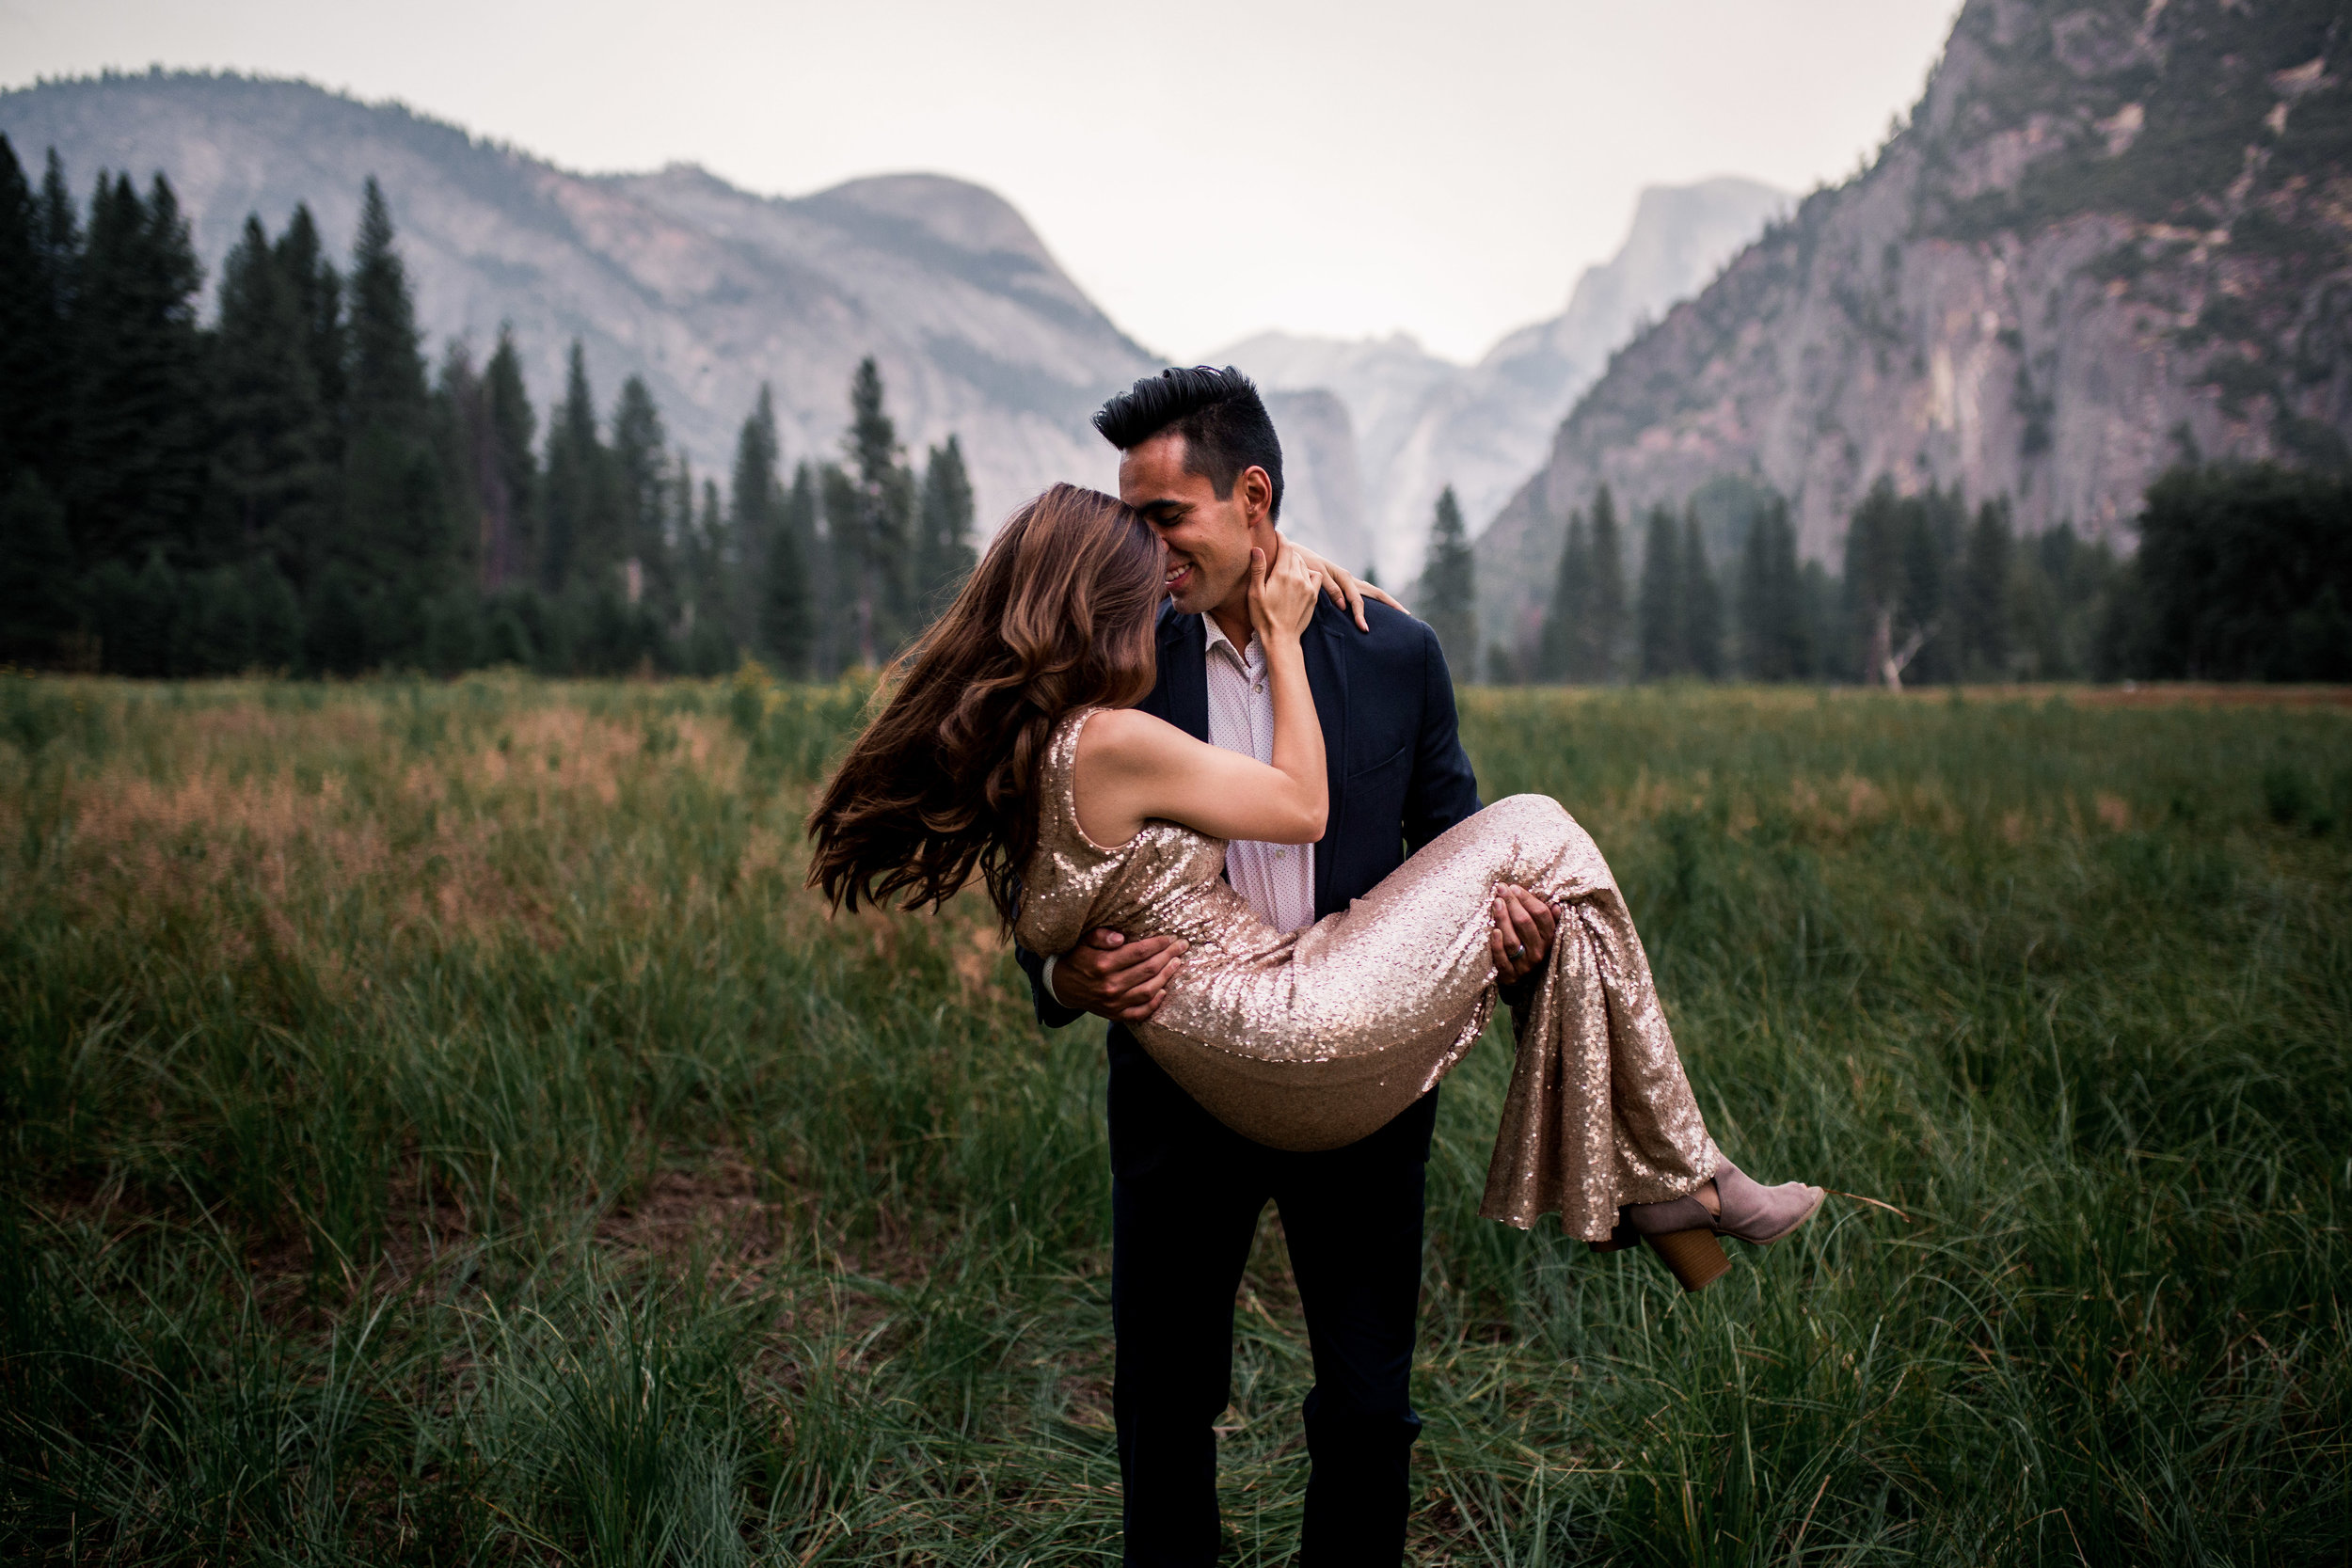 nicole-daacke-photography-yosemite-national-park-adventurous-engagement-session-half-dome-engagement-session-anniversary-photographer-yosemite-elopement-photographer-yosemite-intimate-wedding-photography-51.jpg